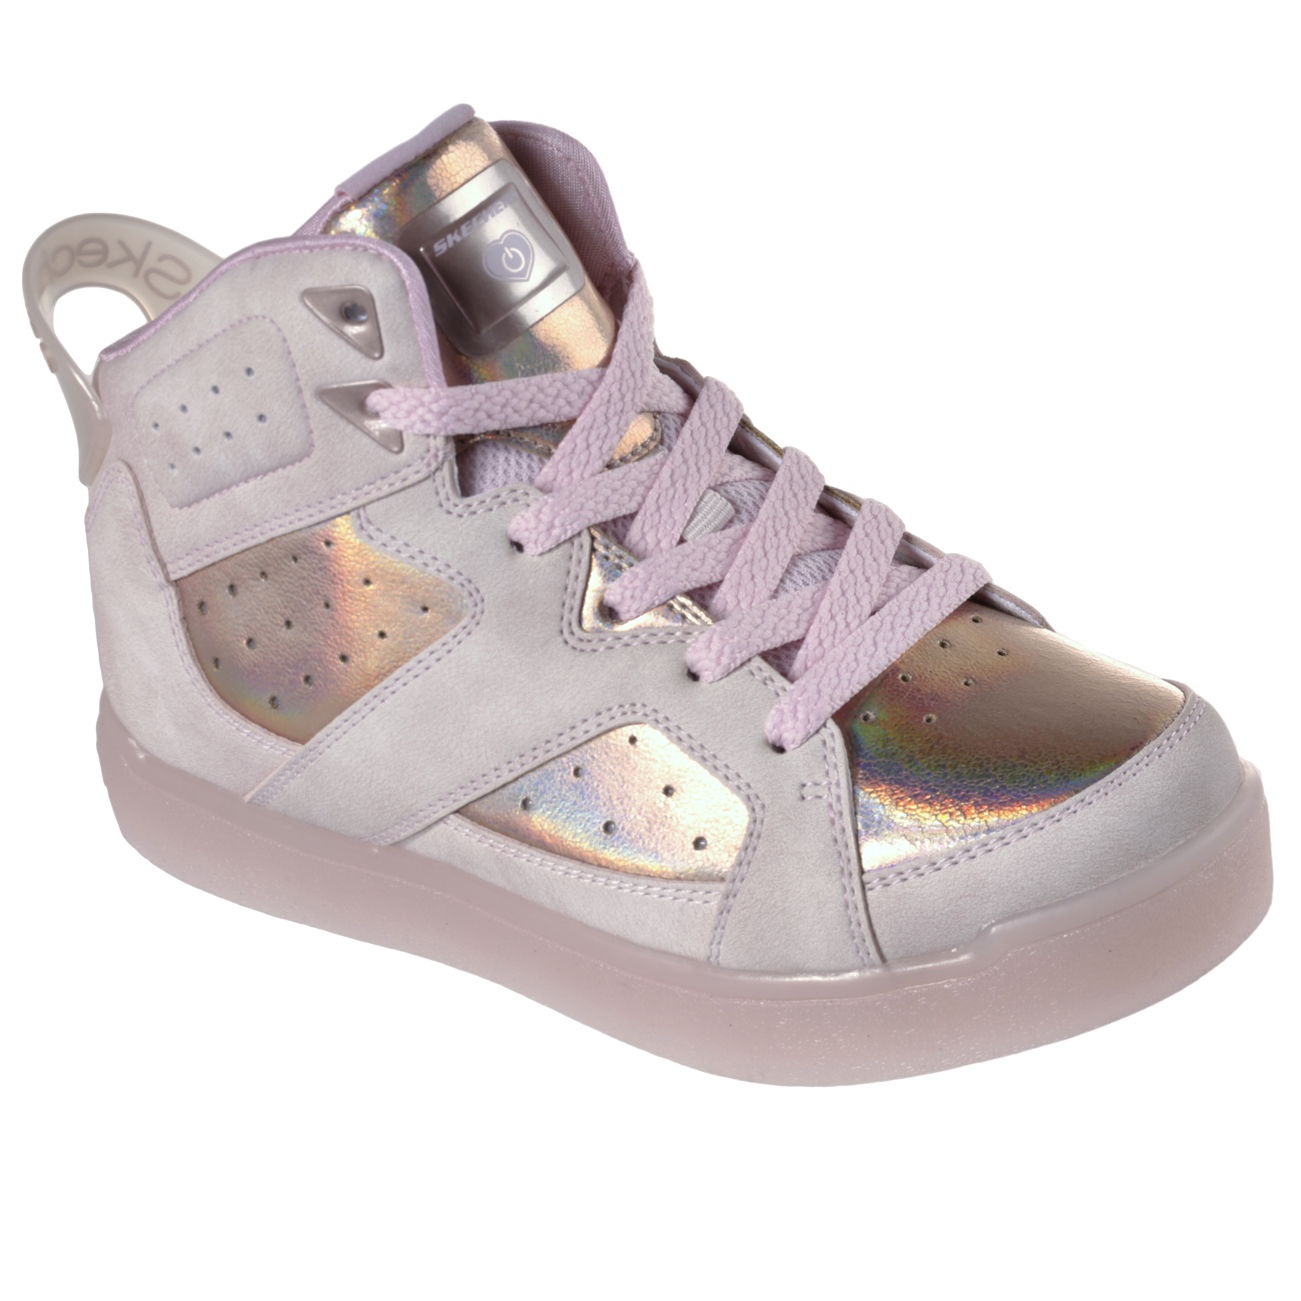 dca477341d64 Details about Kids Girls Skechers Energy Lights E Pro II Lavish Lights  Party Sneaker US 10.5-7